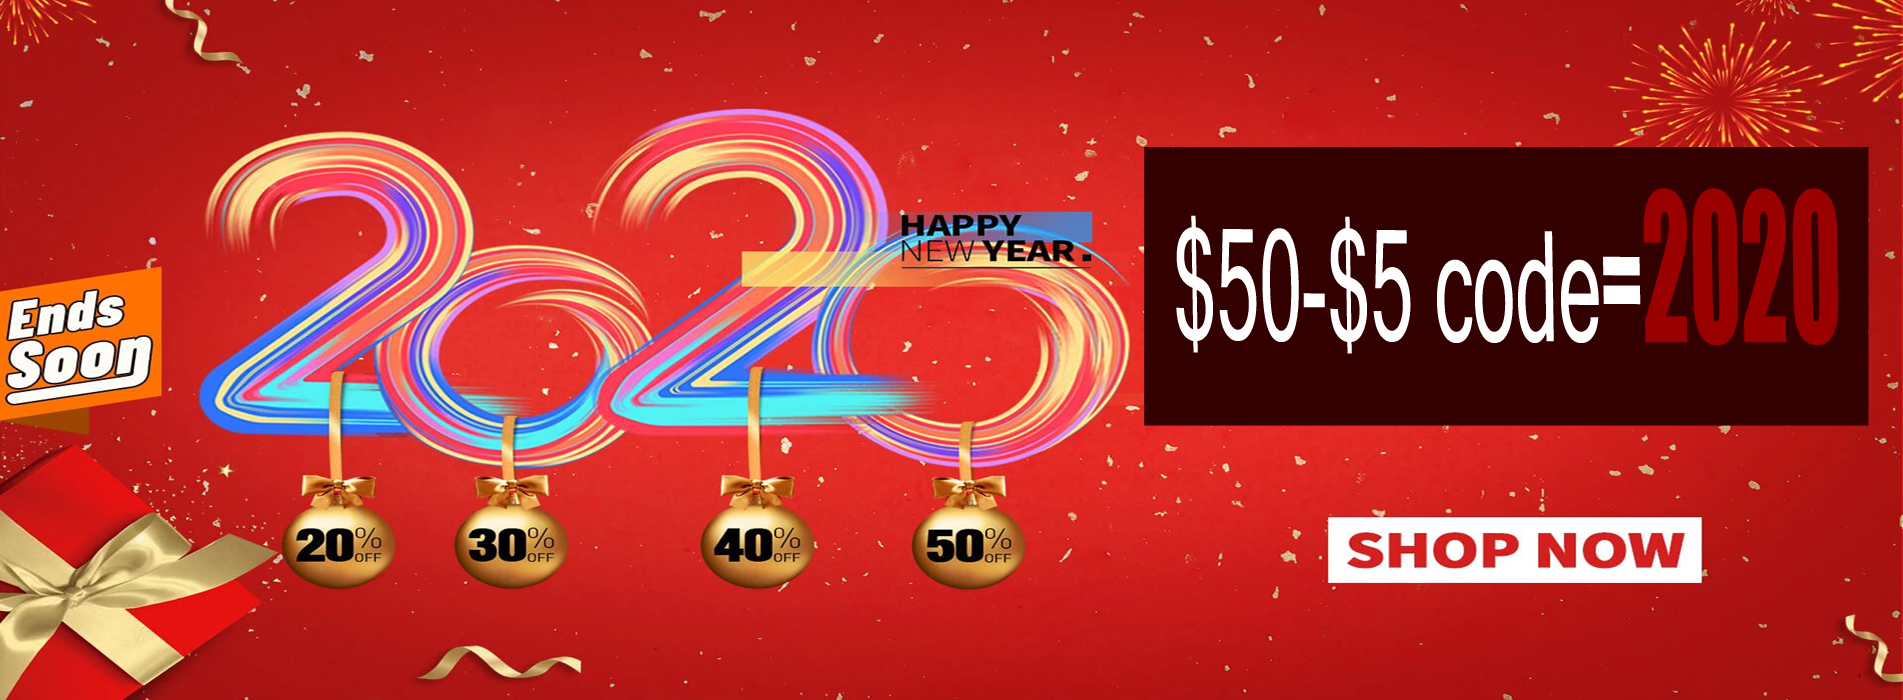 New Year promotion contact lens